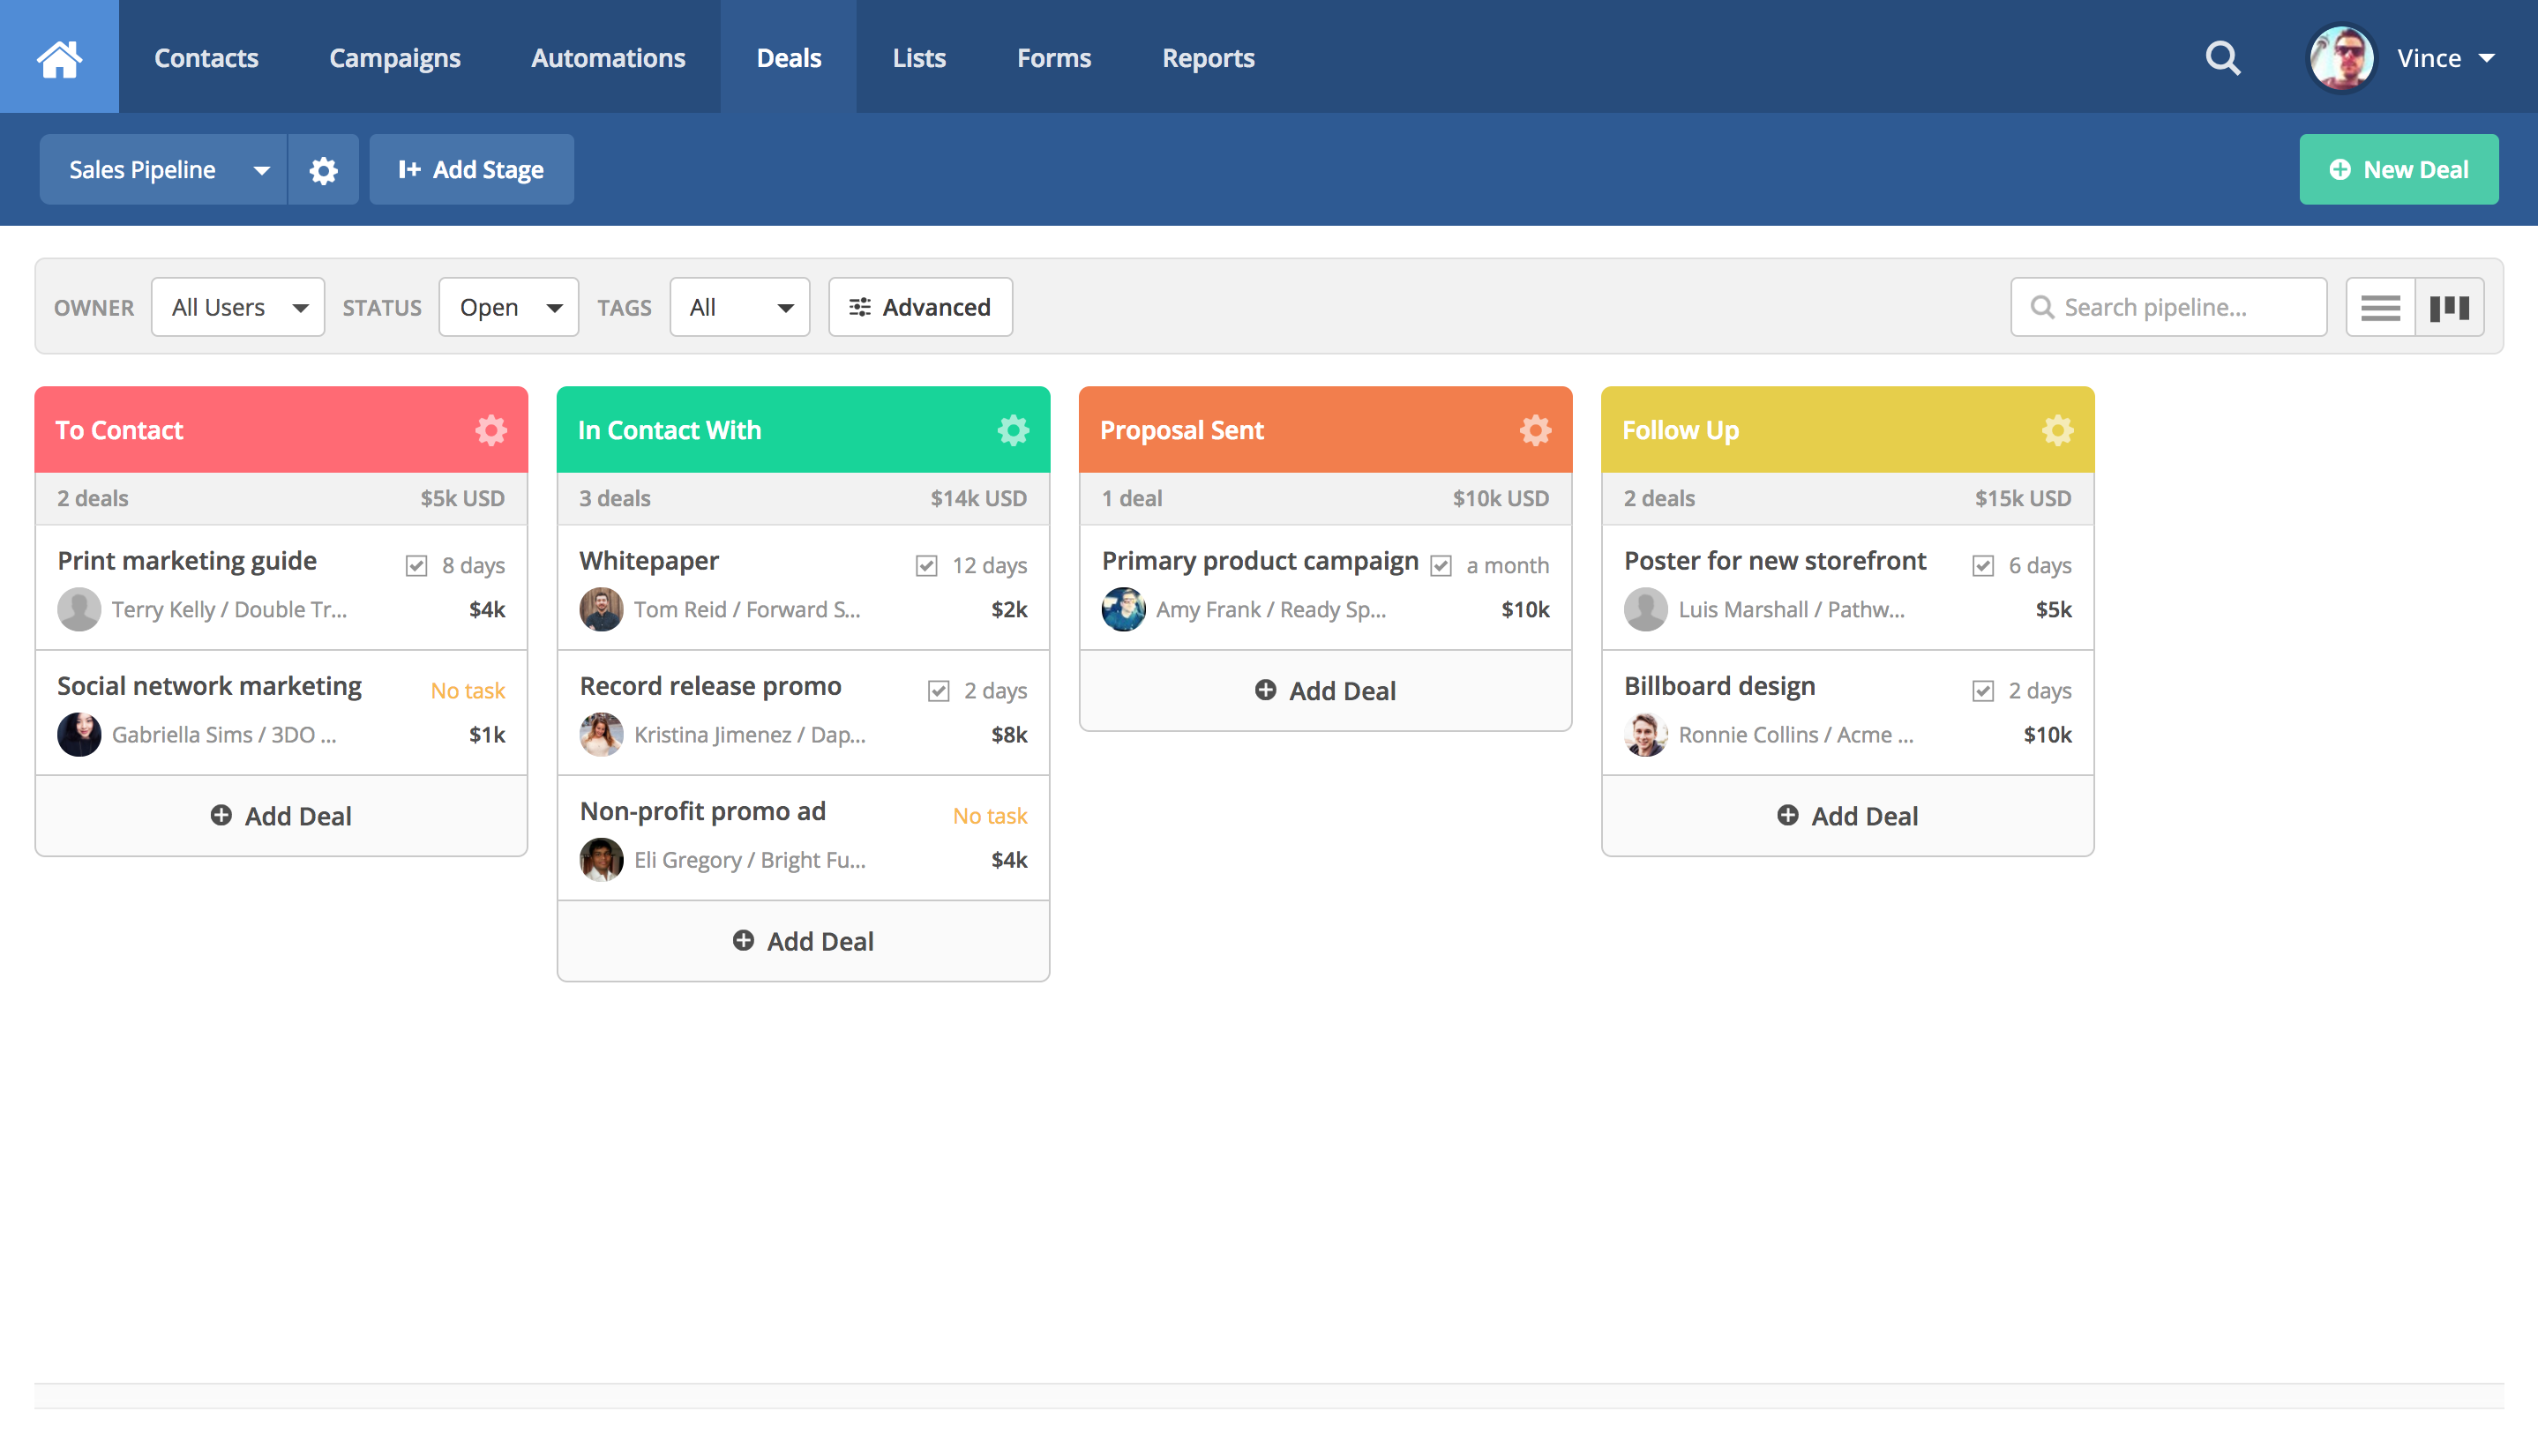 Kanban-style CRM allows you to manage your sales process and automate routine tasks.